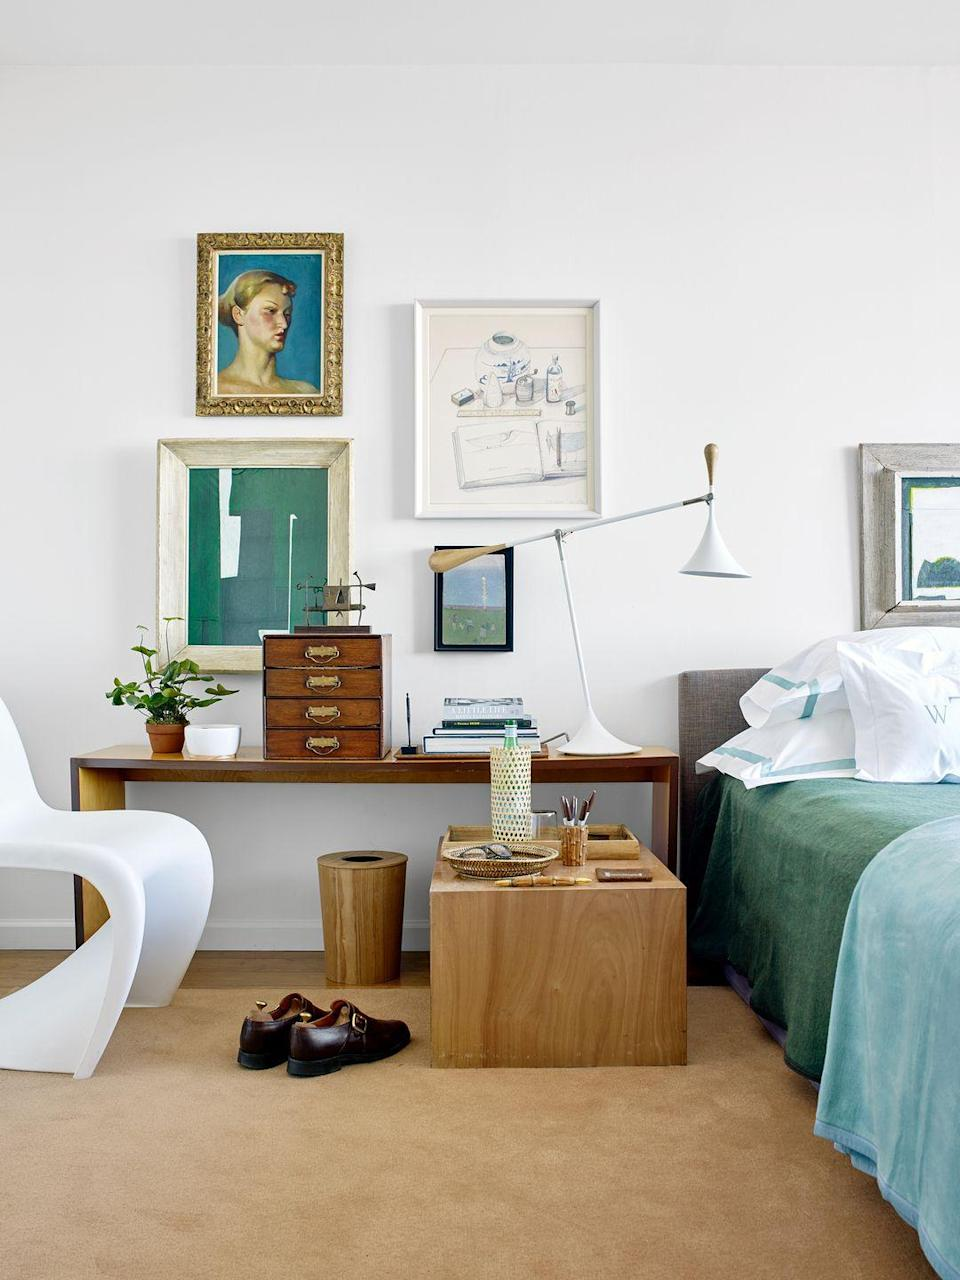 <p>If you do a lot of work from home, consider repurposing your console table into a desk or vanity table. In this bedroom, the side table provides room for extra office supplies as well as bedroom essentials and adjustable lamp is perfect for both studying at the table and reading in bed. </p>